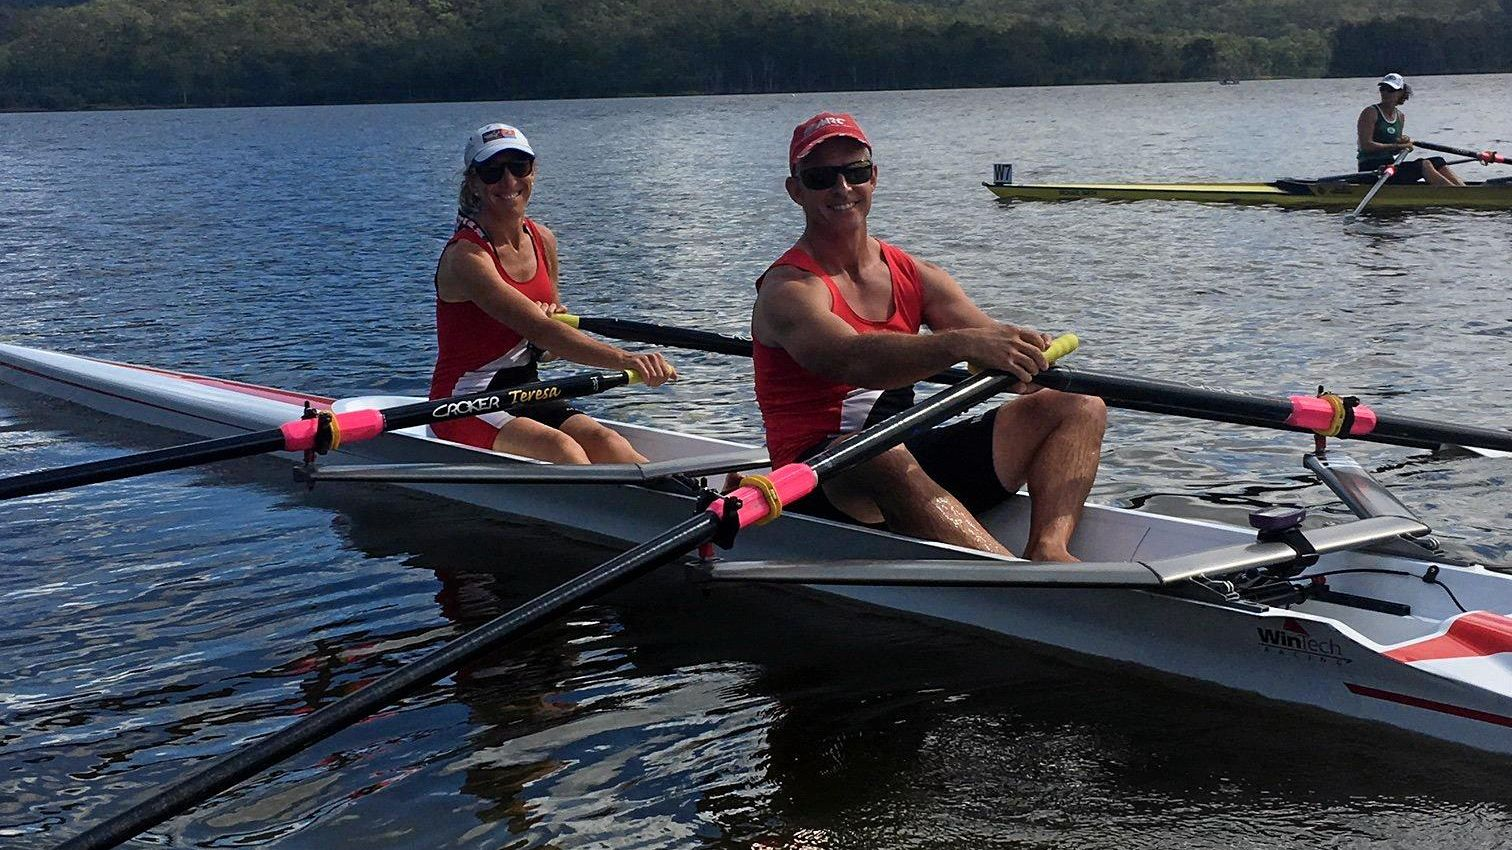 Rower's early morning platypus rendezvous | Daily Mercury